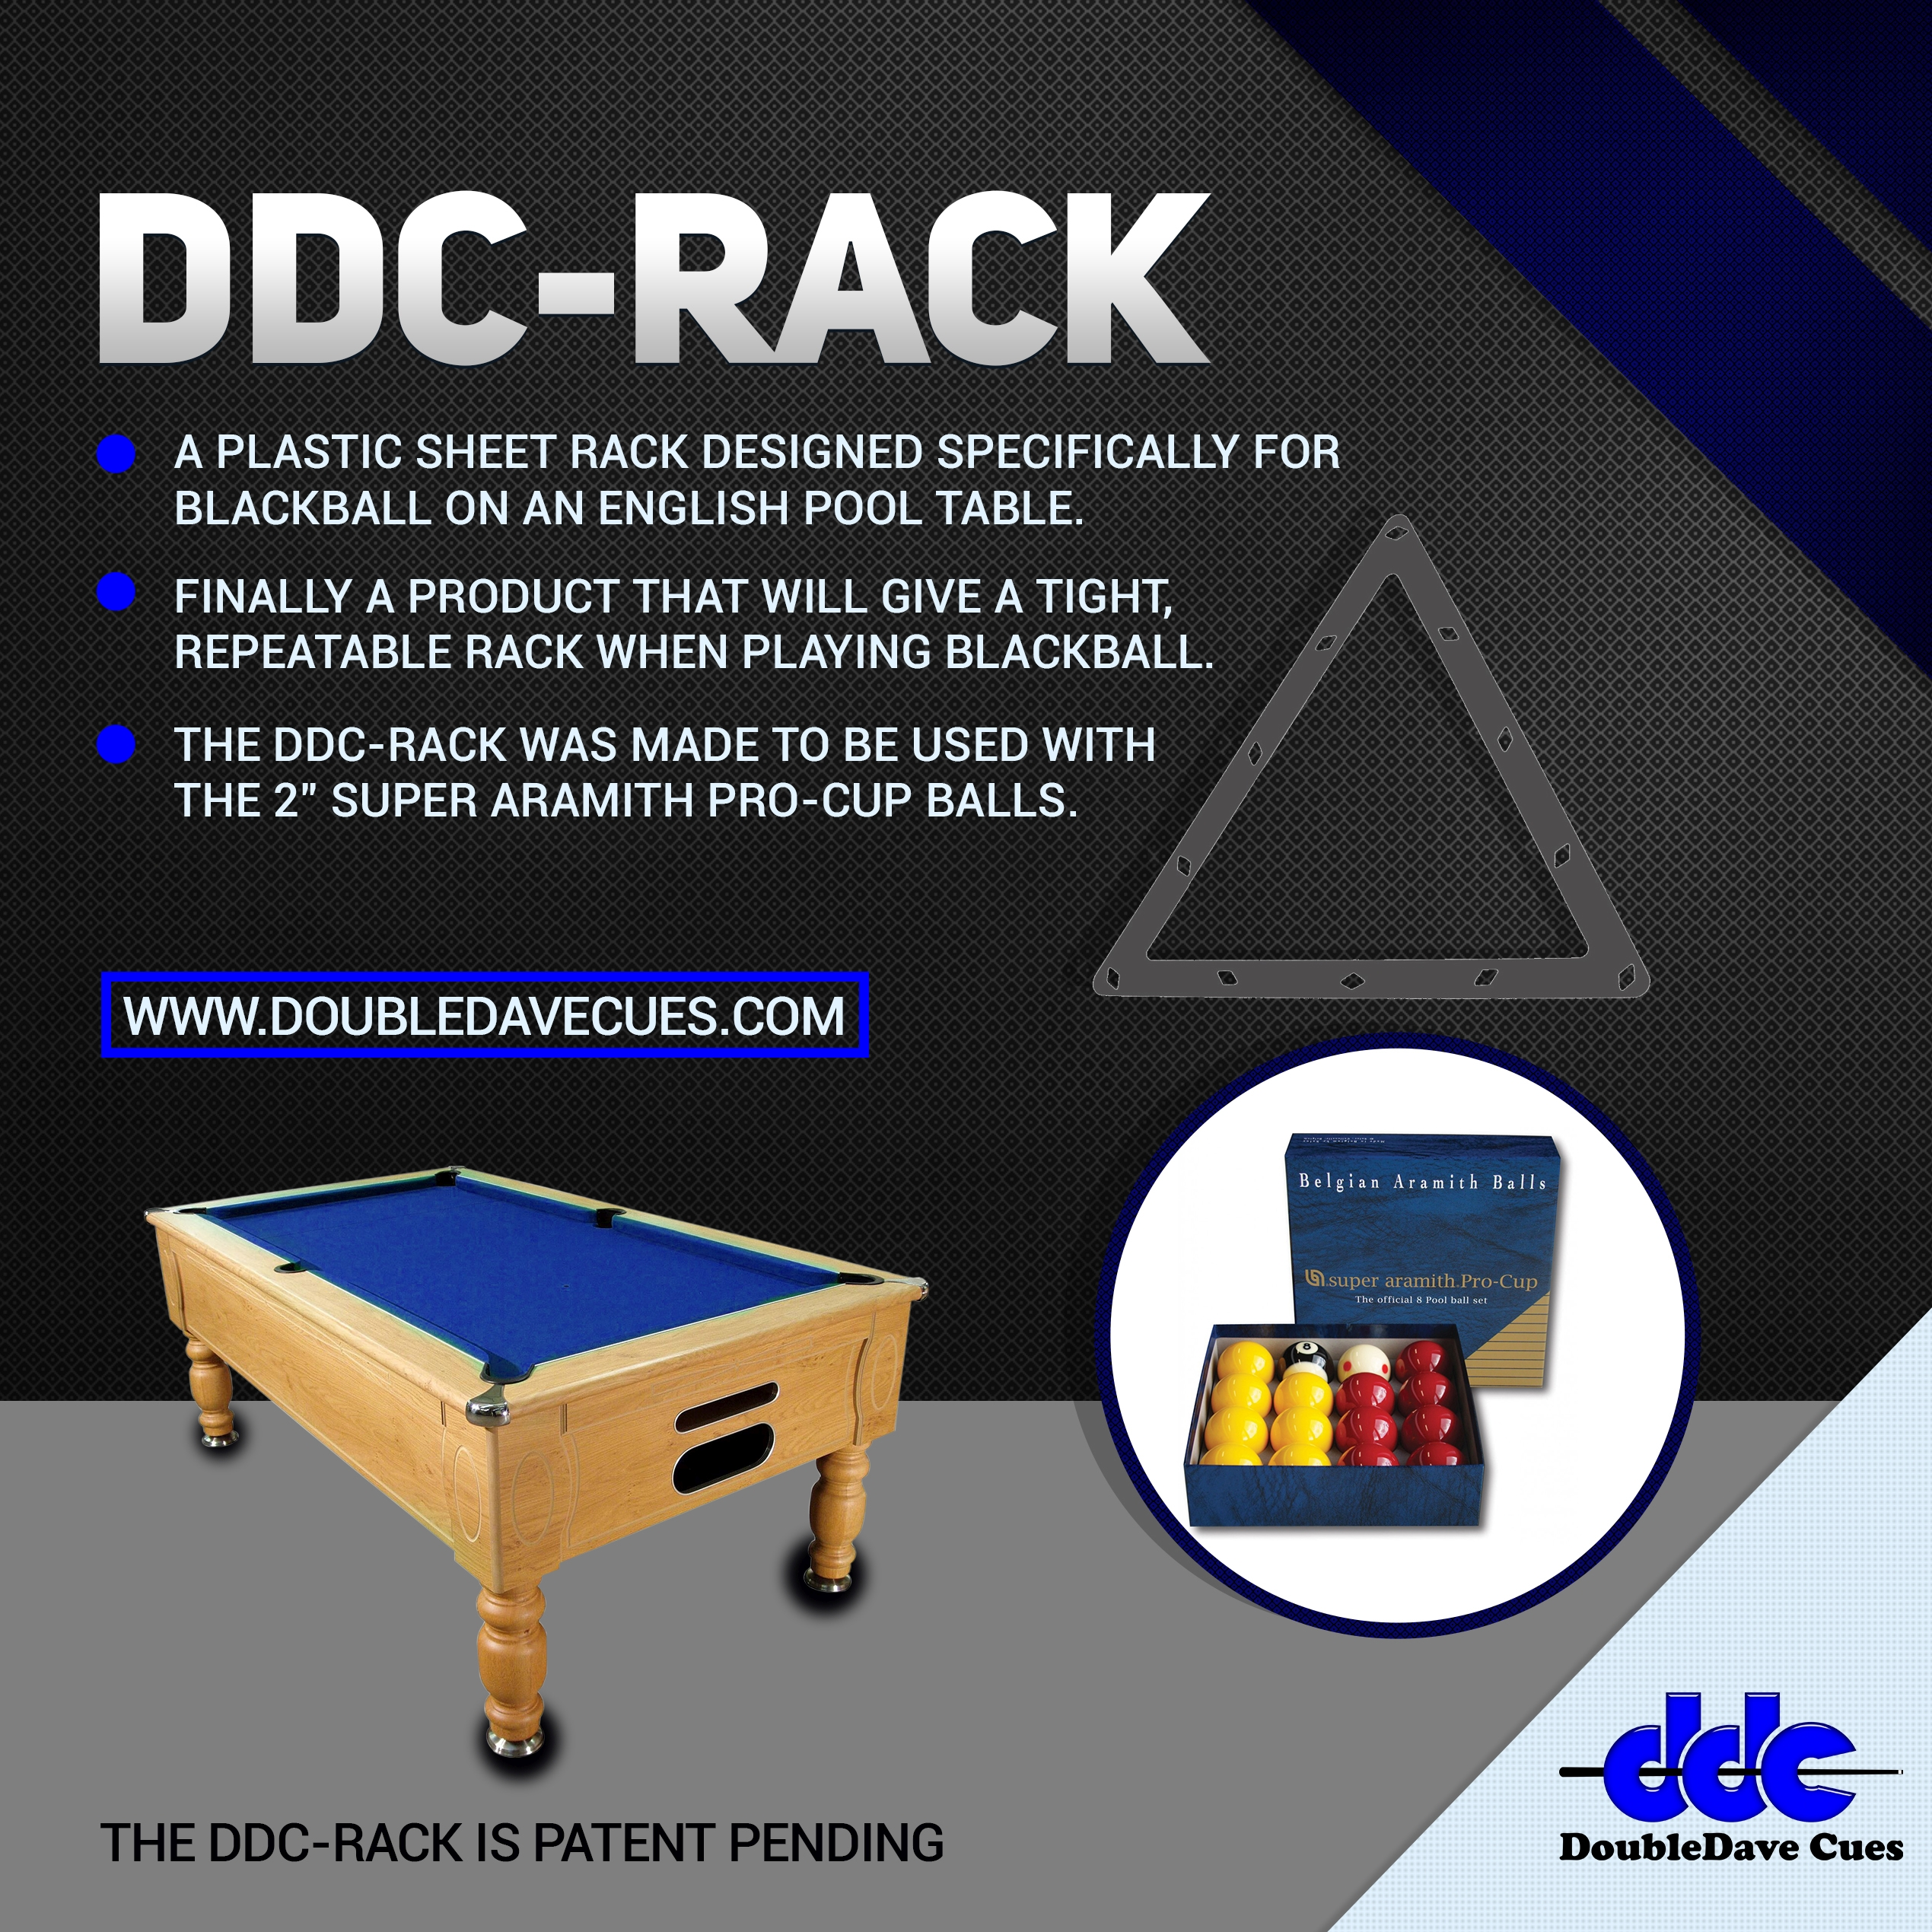 DDC-Rack für BlackBall/English Pool